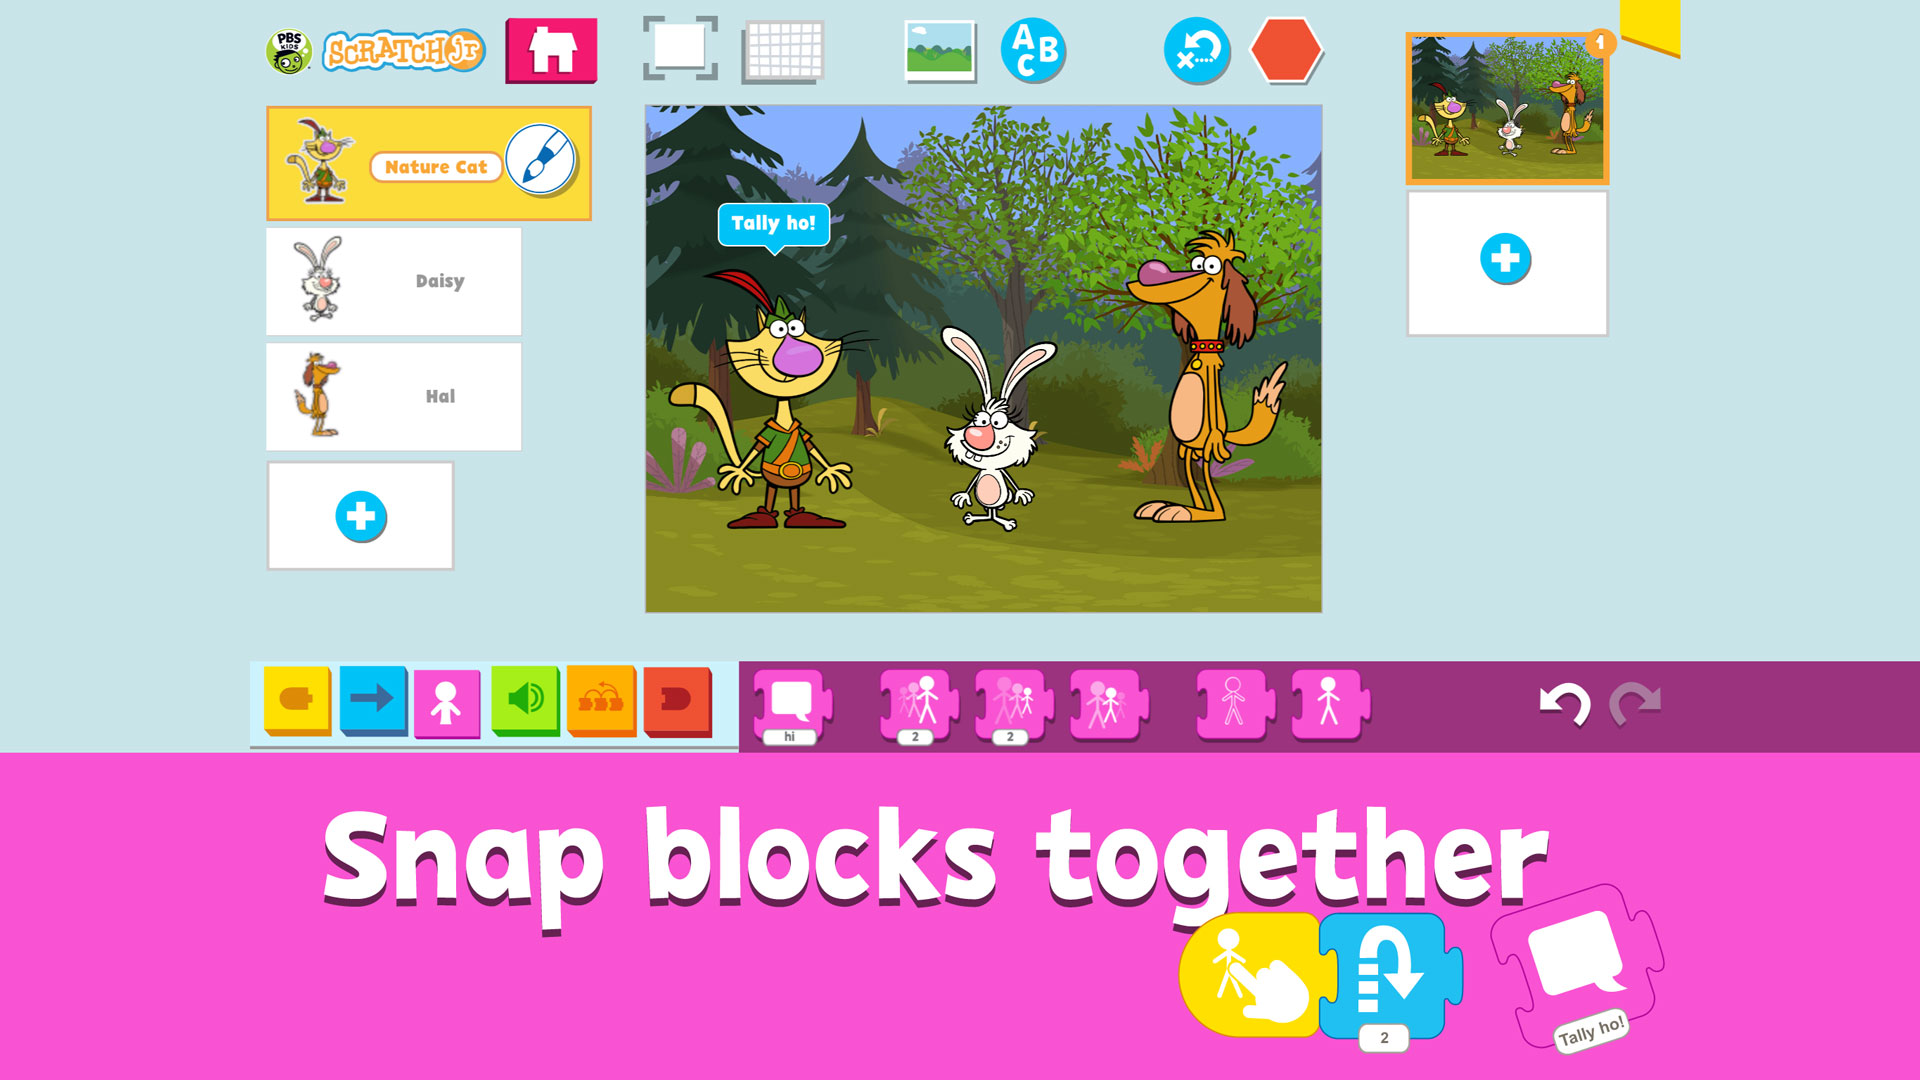 scratchjr app screenshot